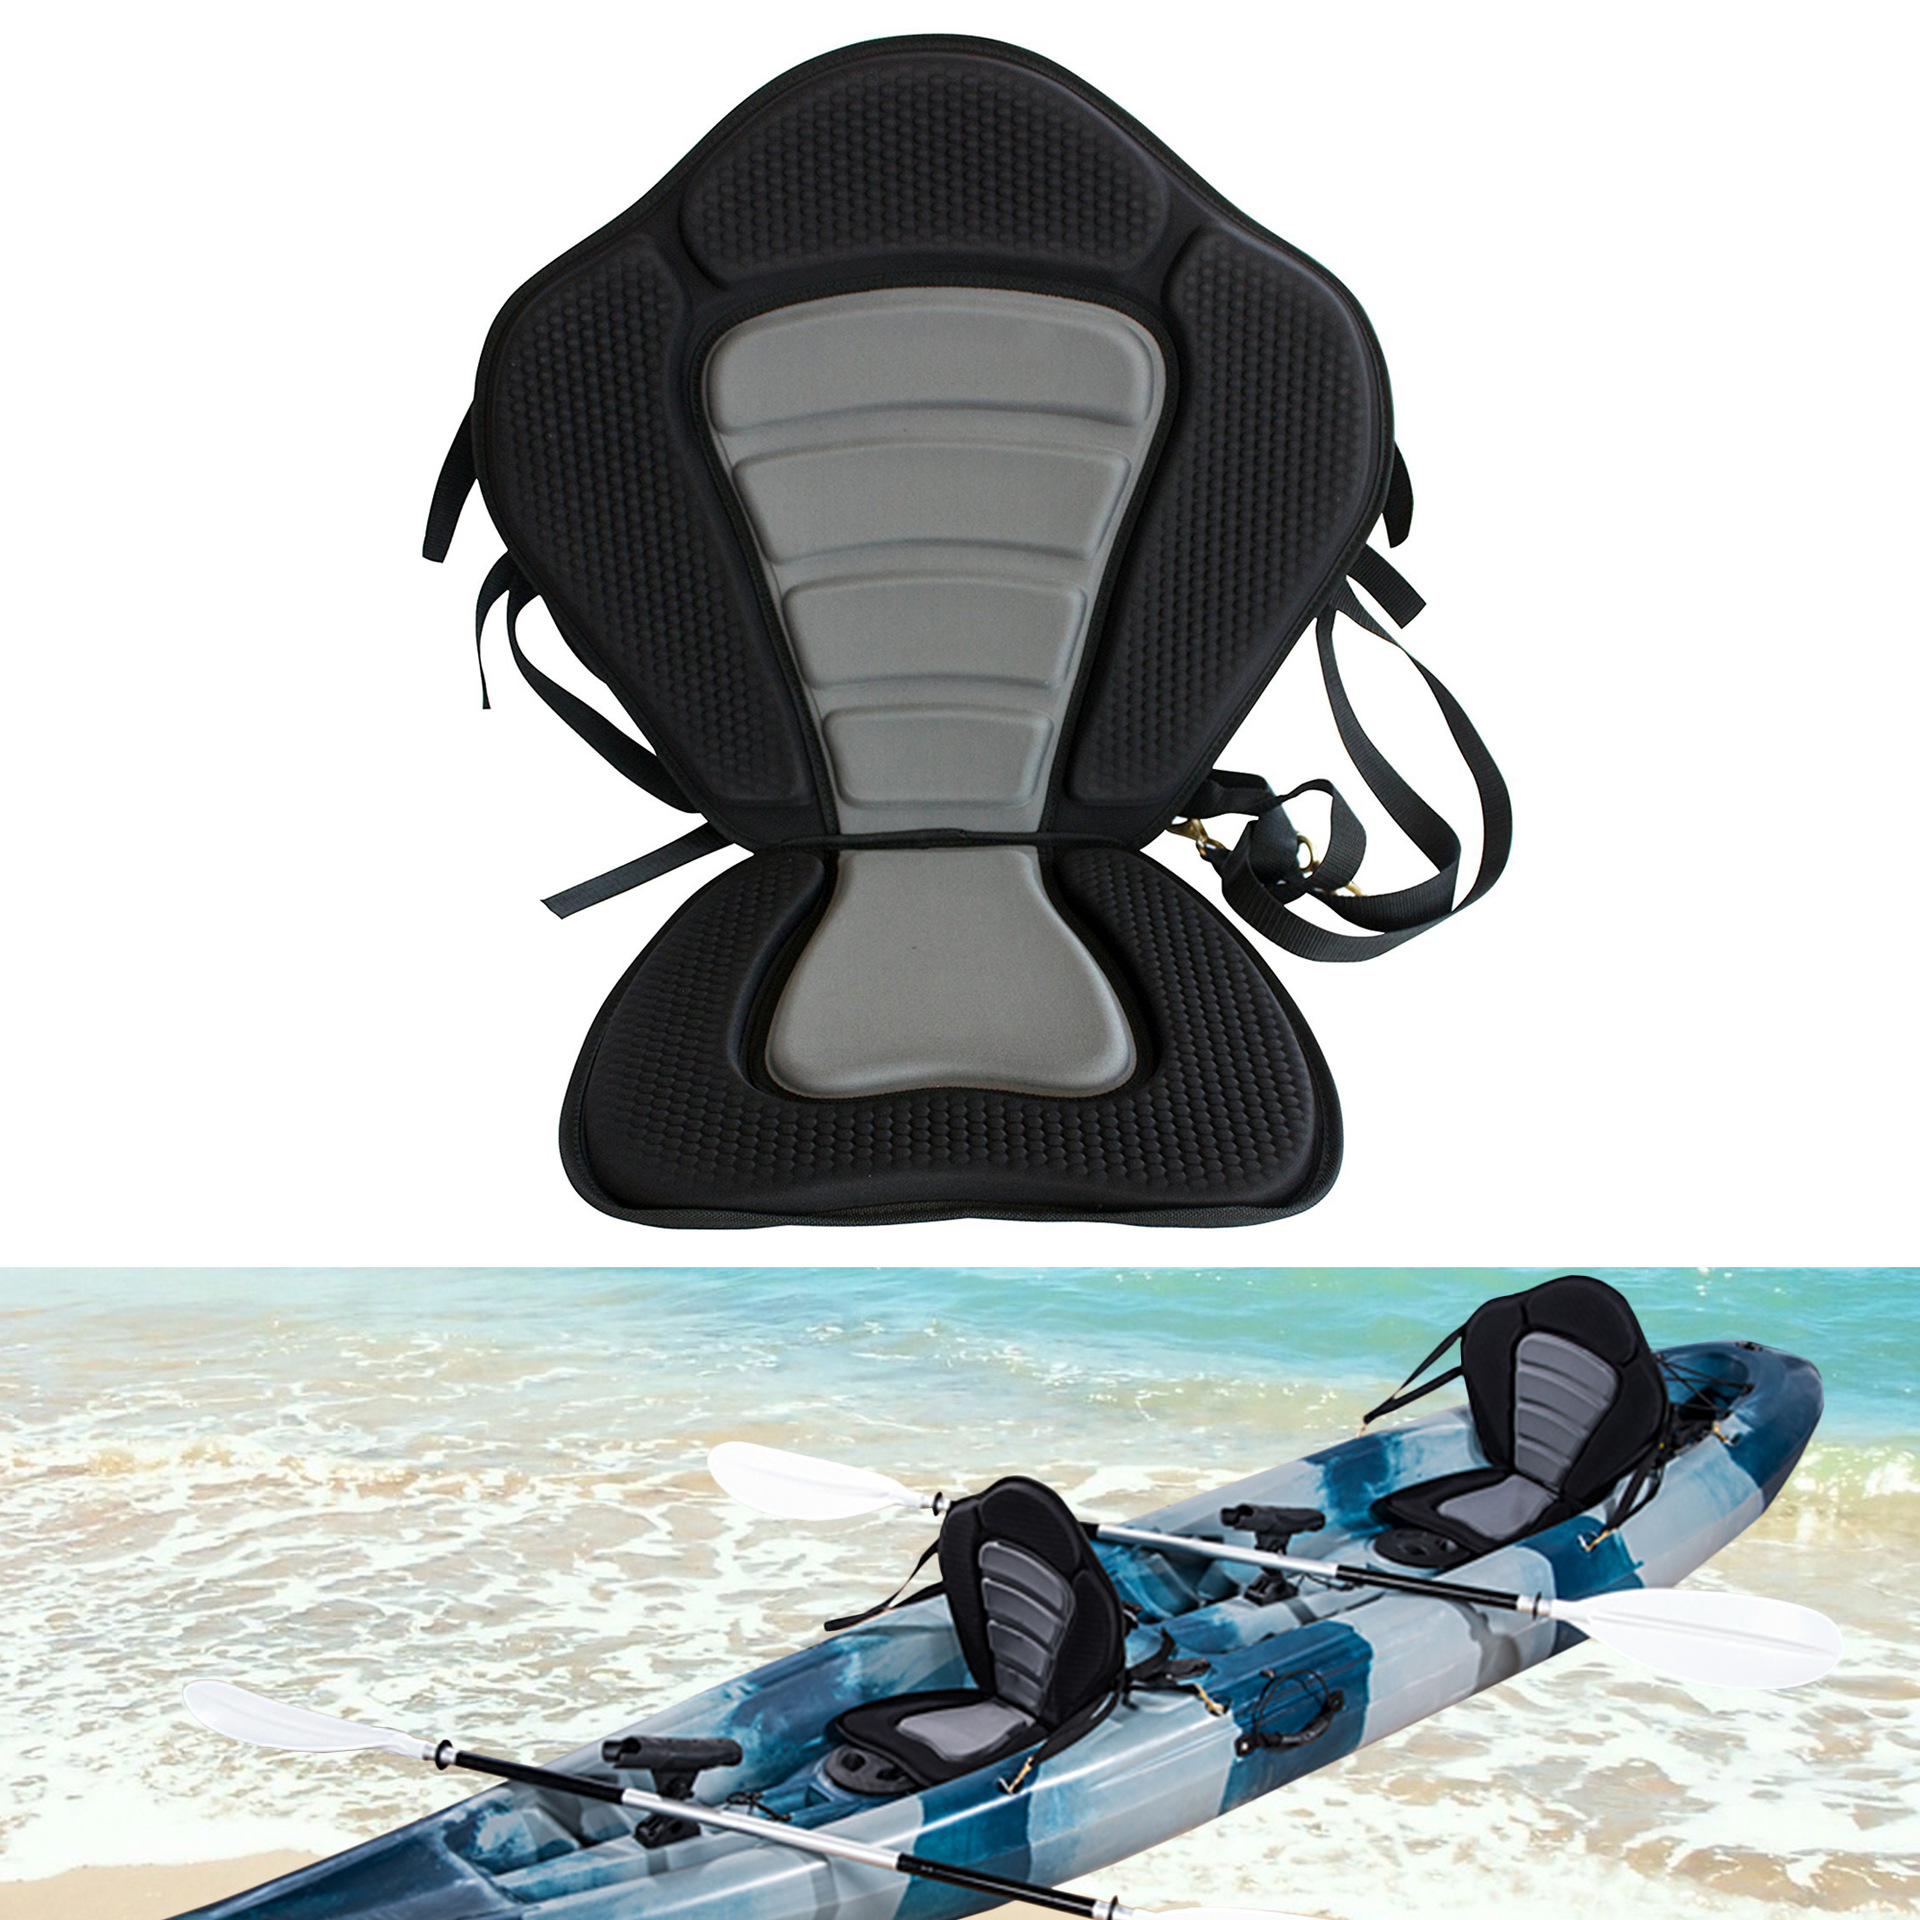 Cross Border Hot Sales Black And White With Pattern Seat Cushion Kayaking Press Film Backrest Seat Cushion Arm Chair